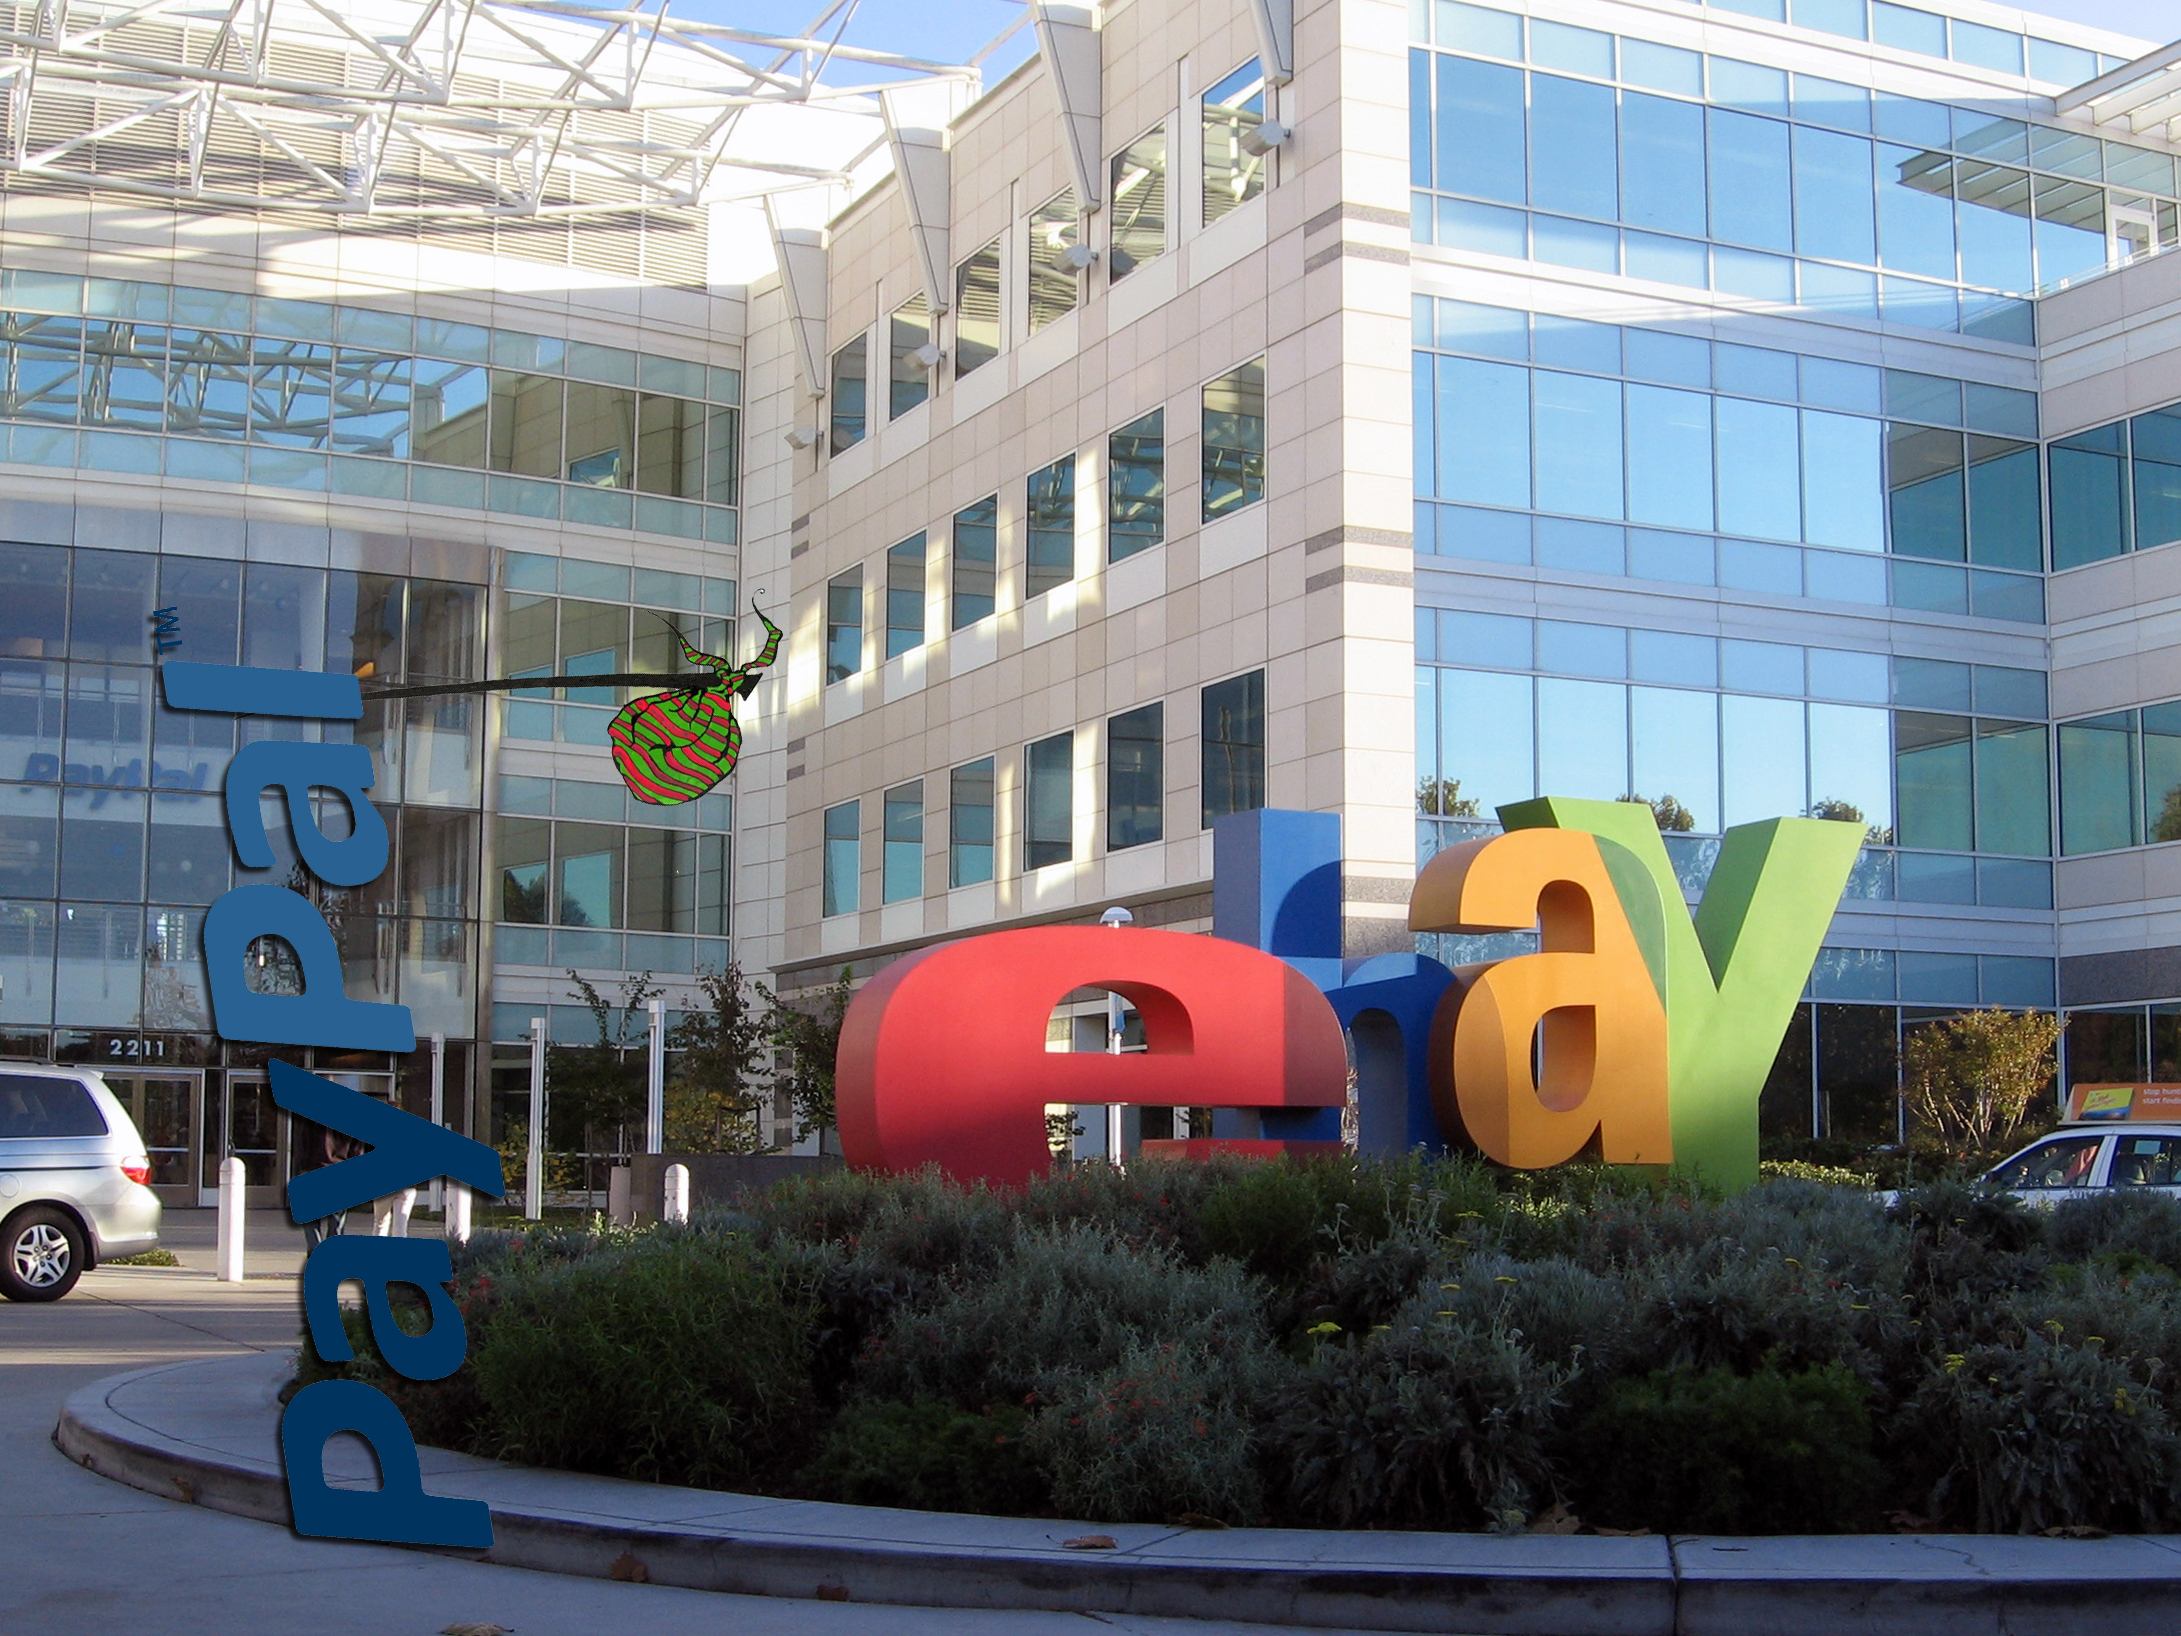 Ebay Plans To Relaunch Ebay India After It Makes 1 1b Selling Its Flipkart Stake To Walmart Techcrunch